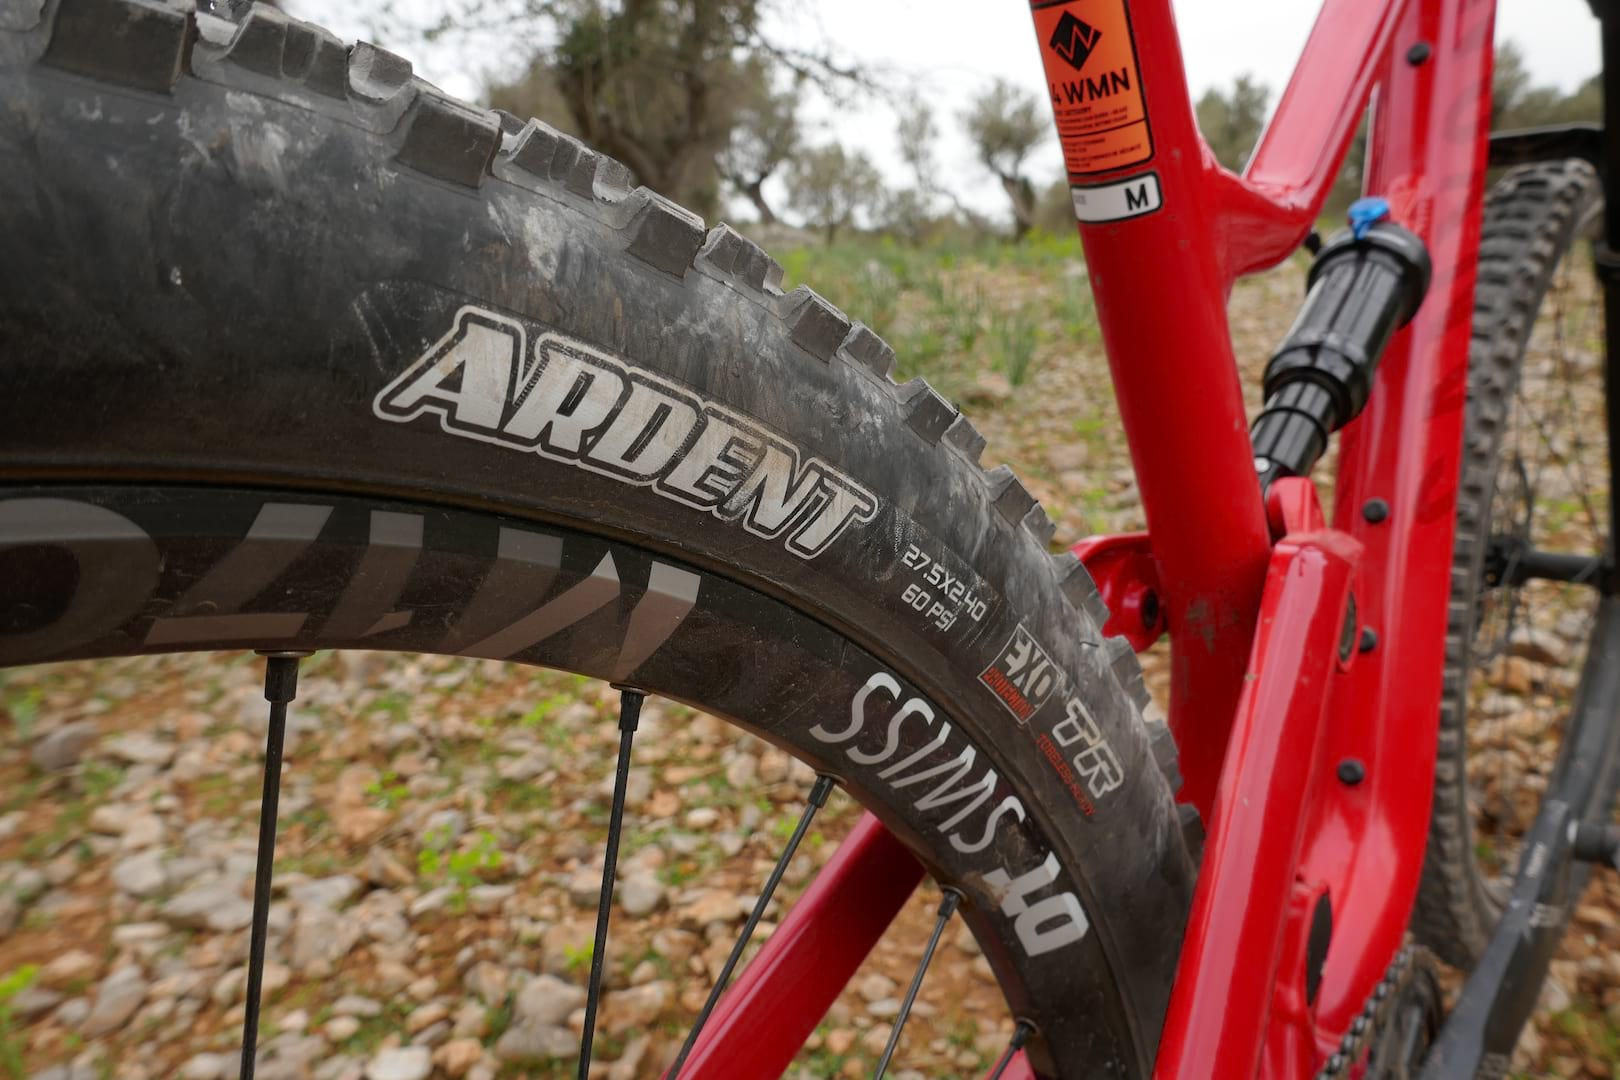 e27dd4c45b2 Review: Canyon Spectral WMN AL 6.0 - Singletrack Magazine